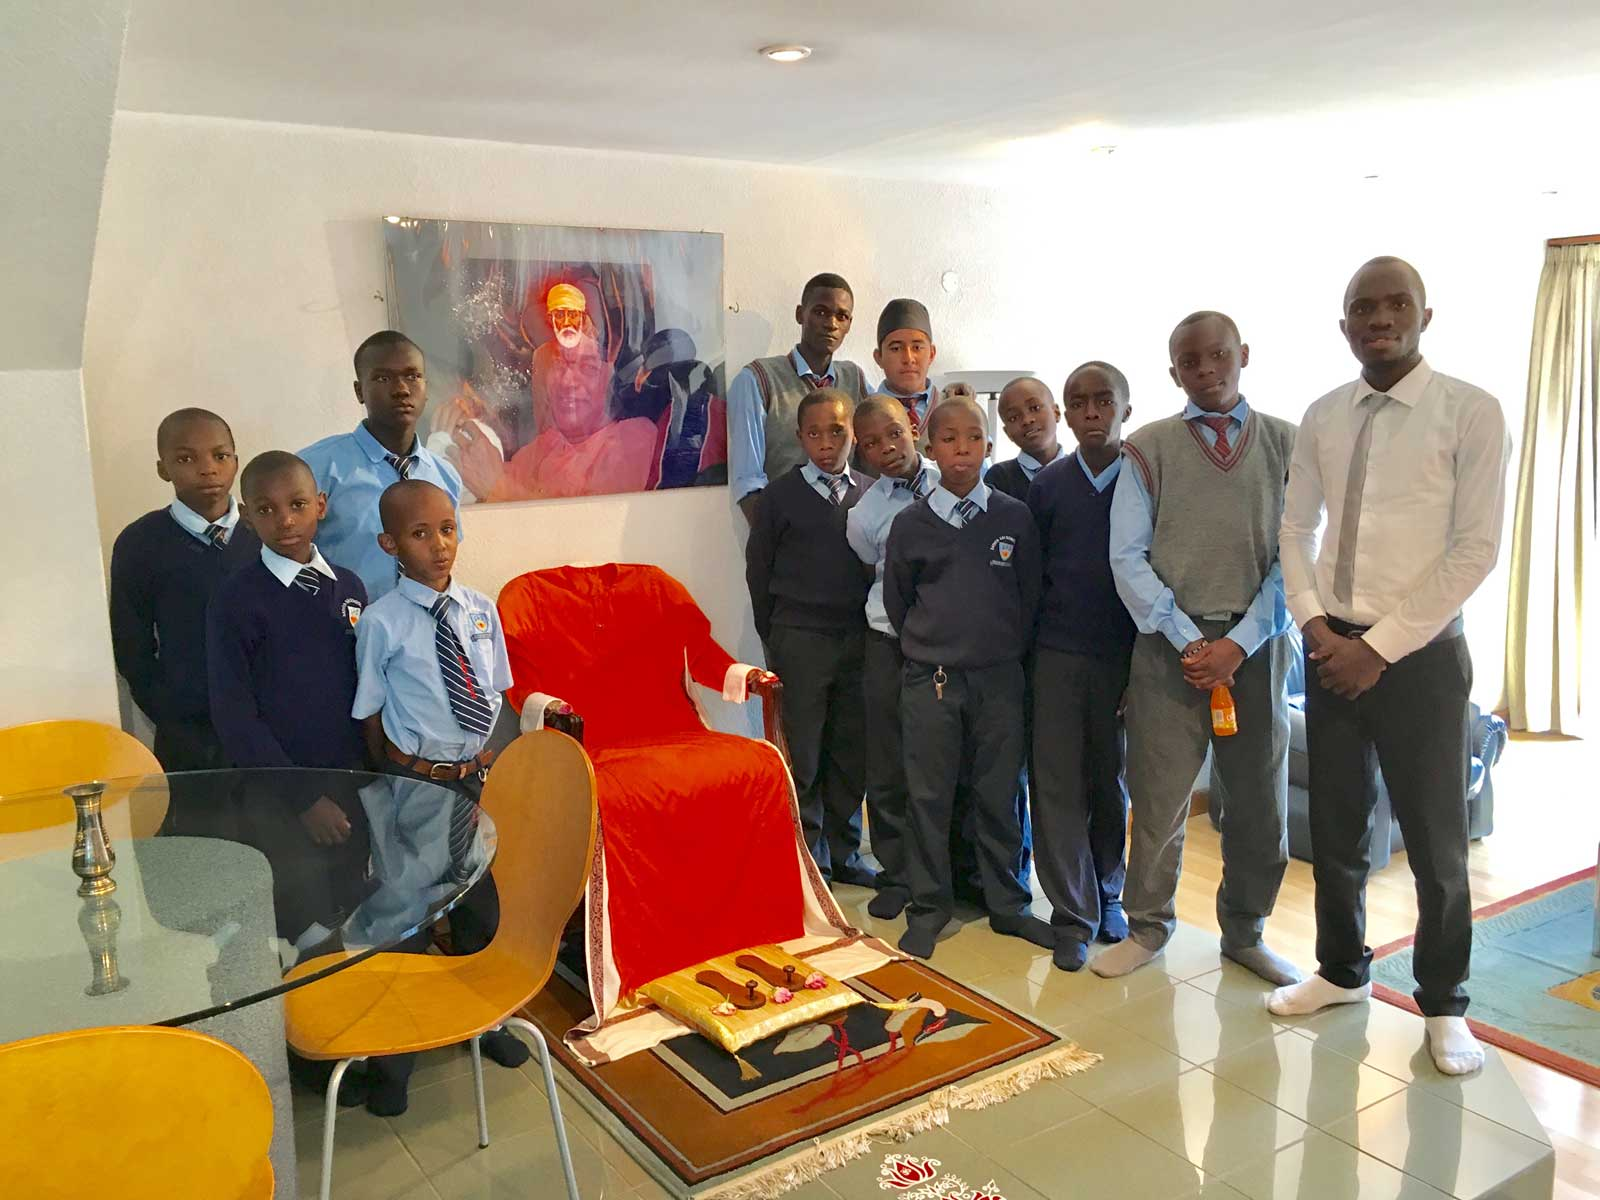 Students in Baba's apartment at the Sai Centre in Nairobi